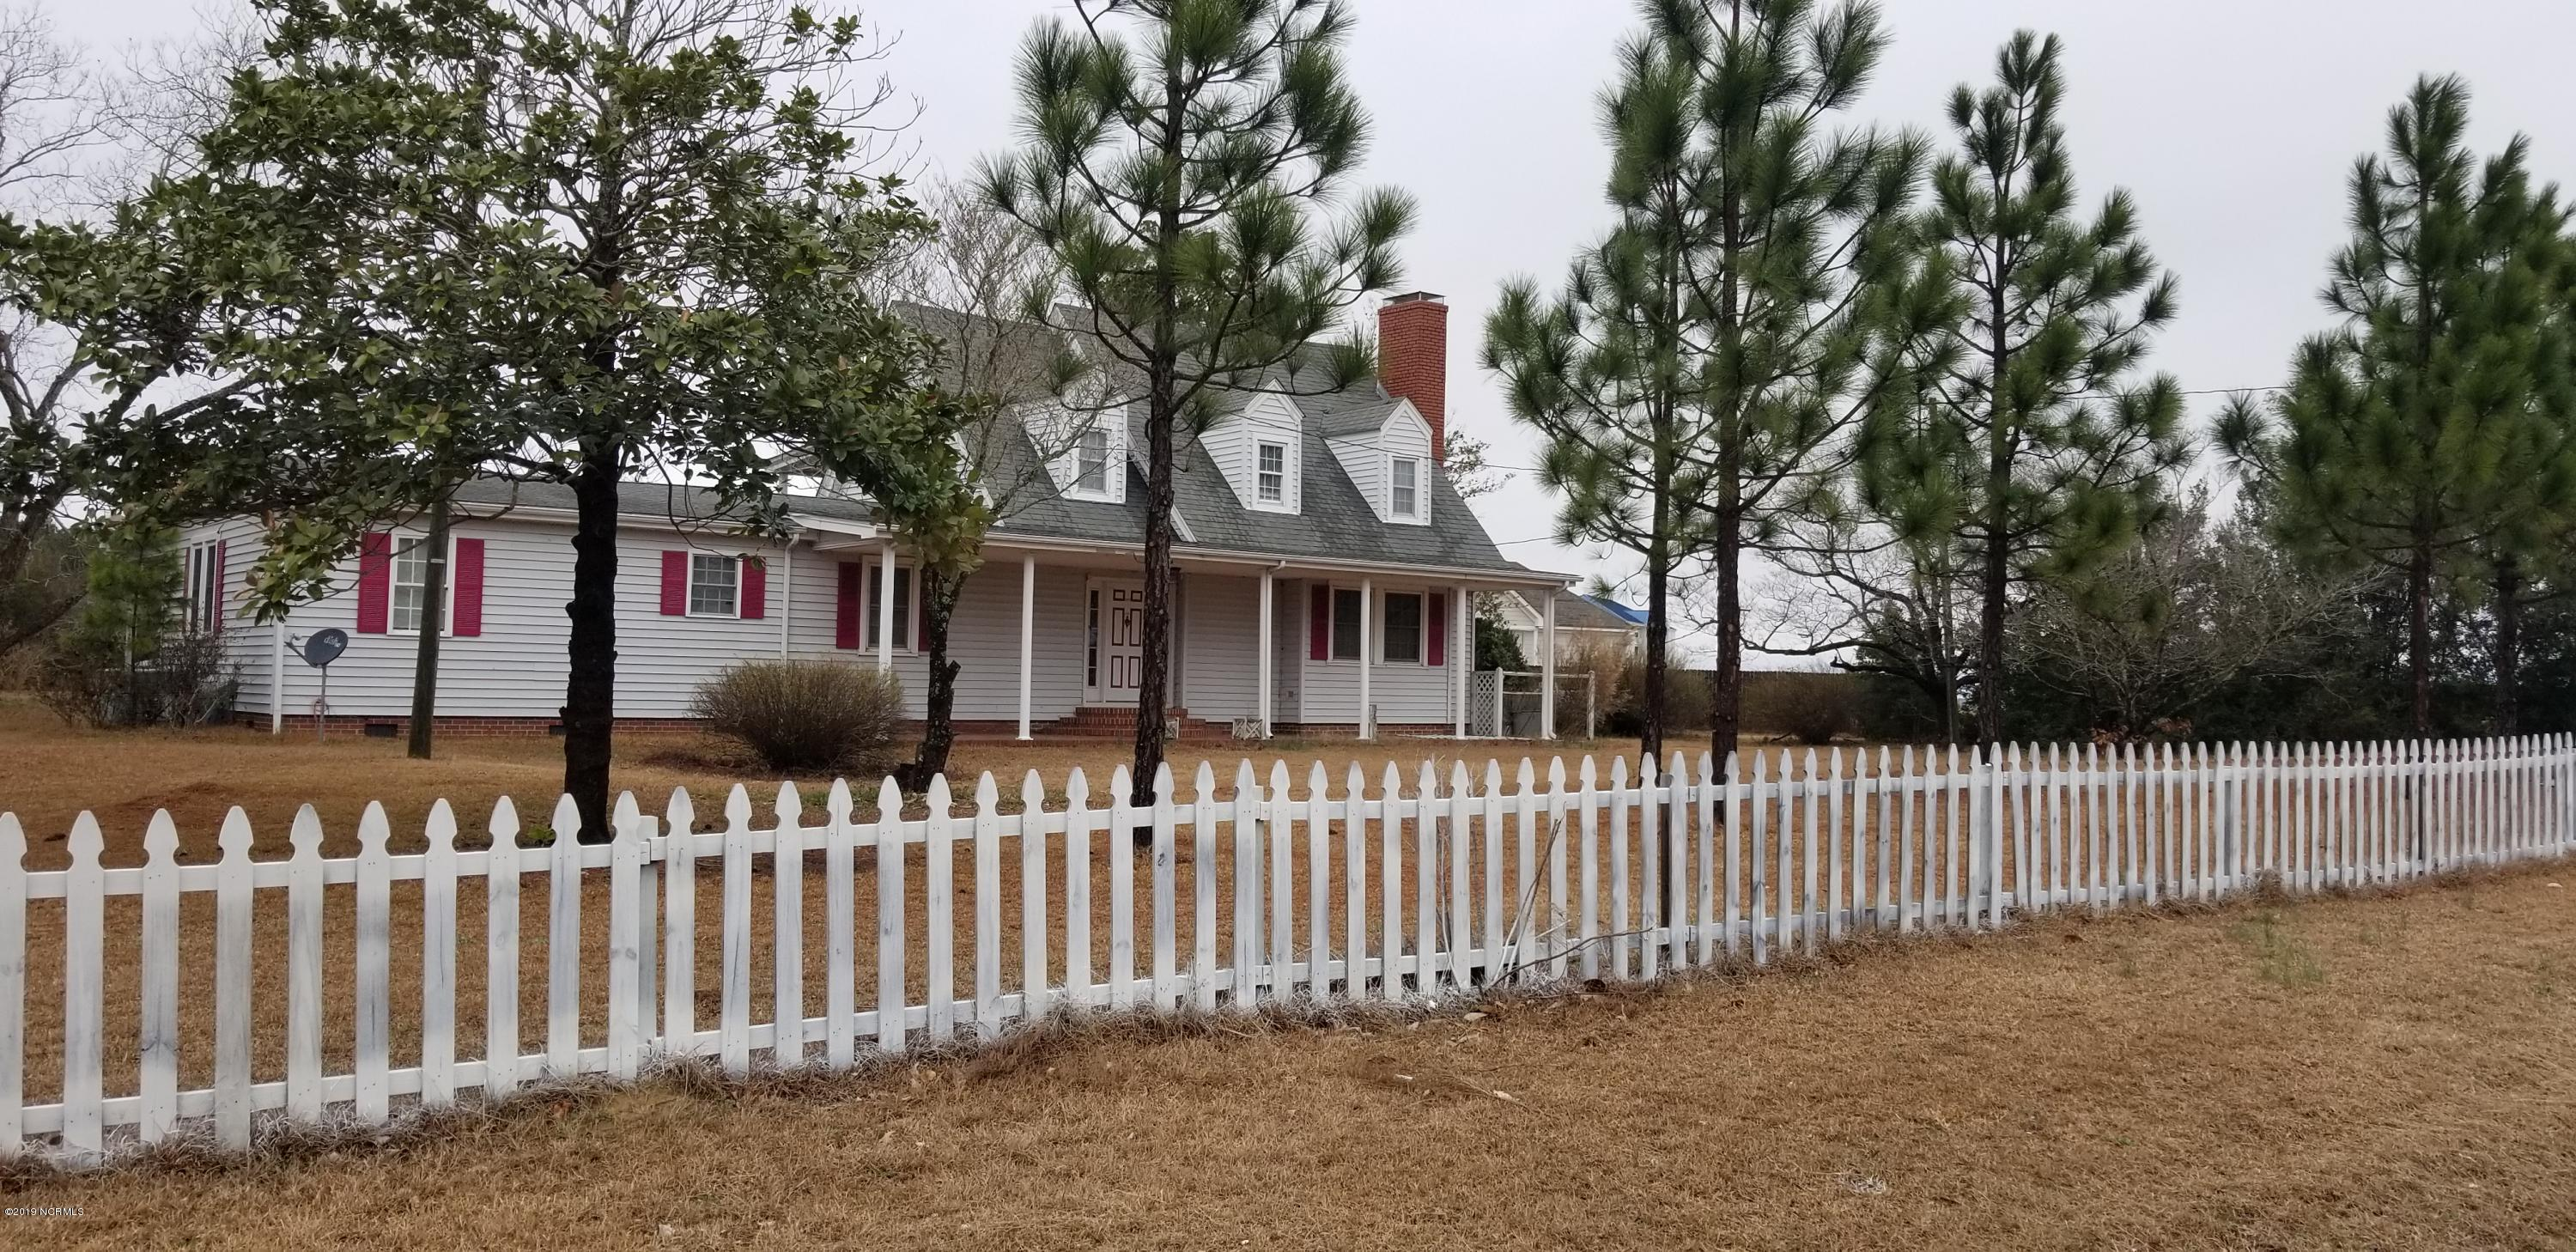 18527 Nc Hwy 32, Roper, North Carolina 27970, 4 Bedrooms Bedrooms, 7 Rooms Rooms,2 BathroomsBathrooms,Single family residence,For sale,Nc Hwy 32,100154013